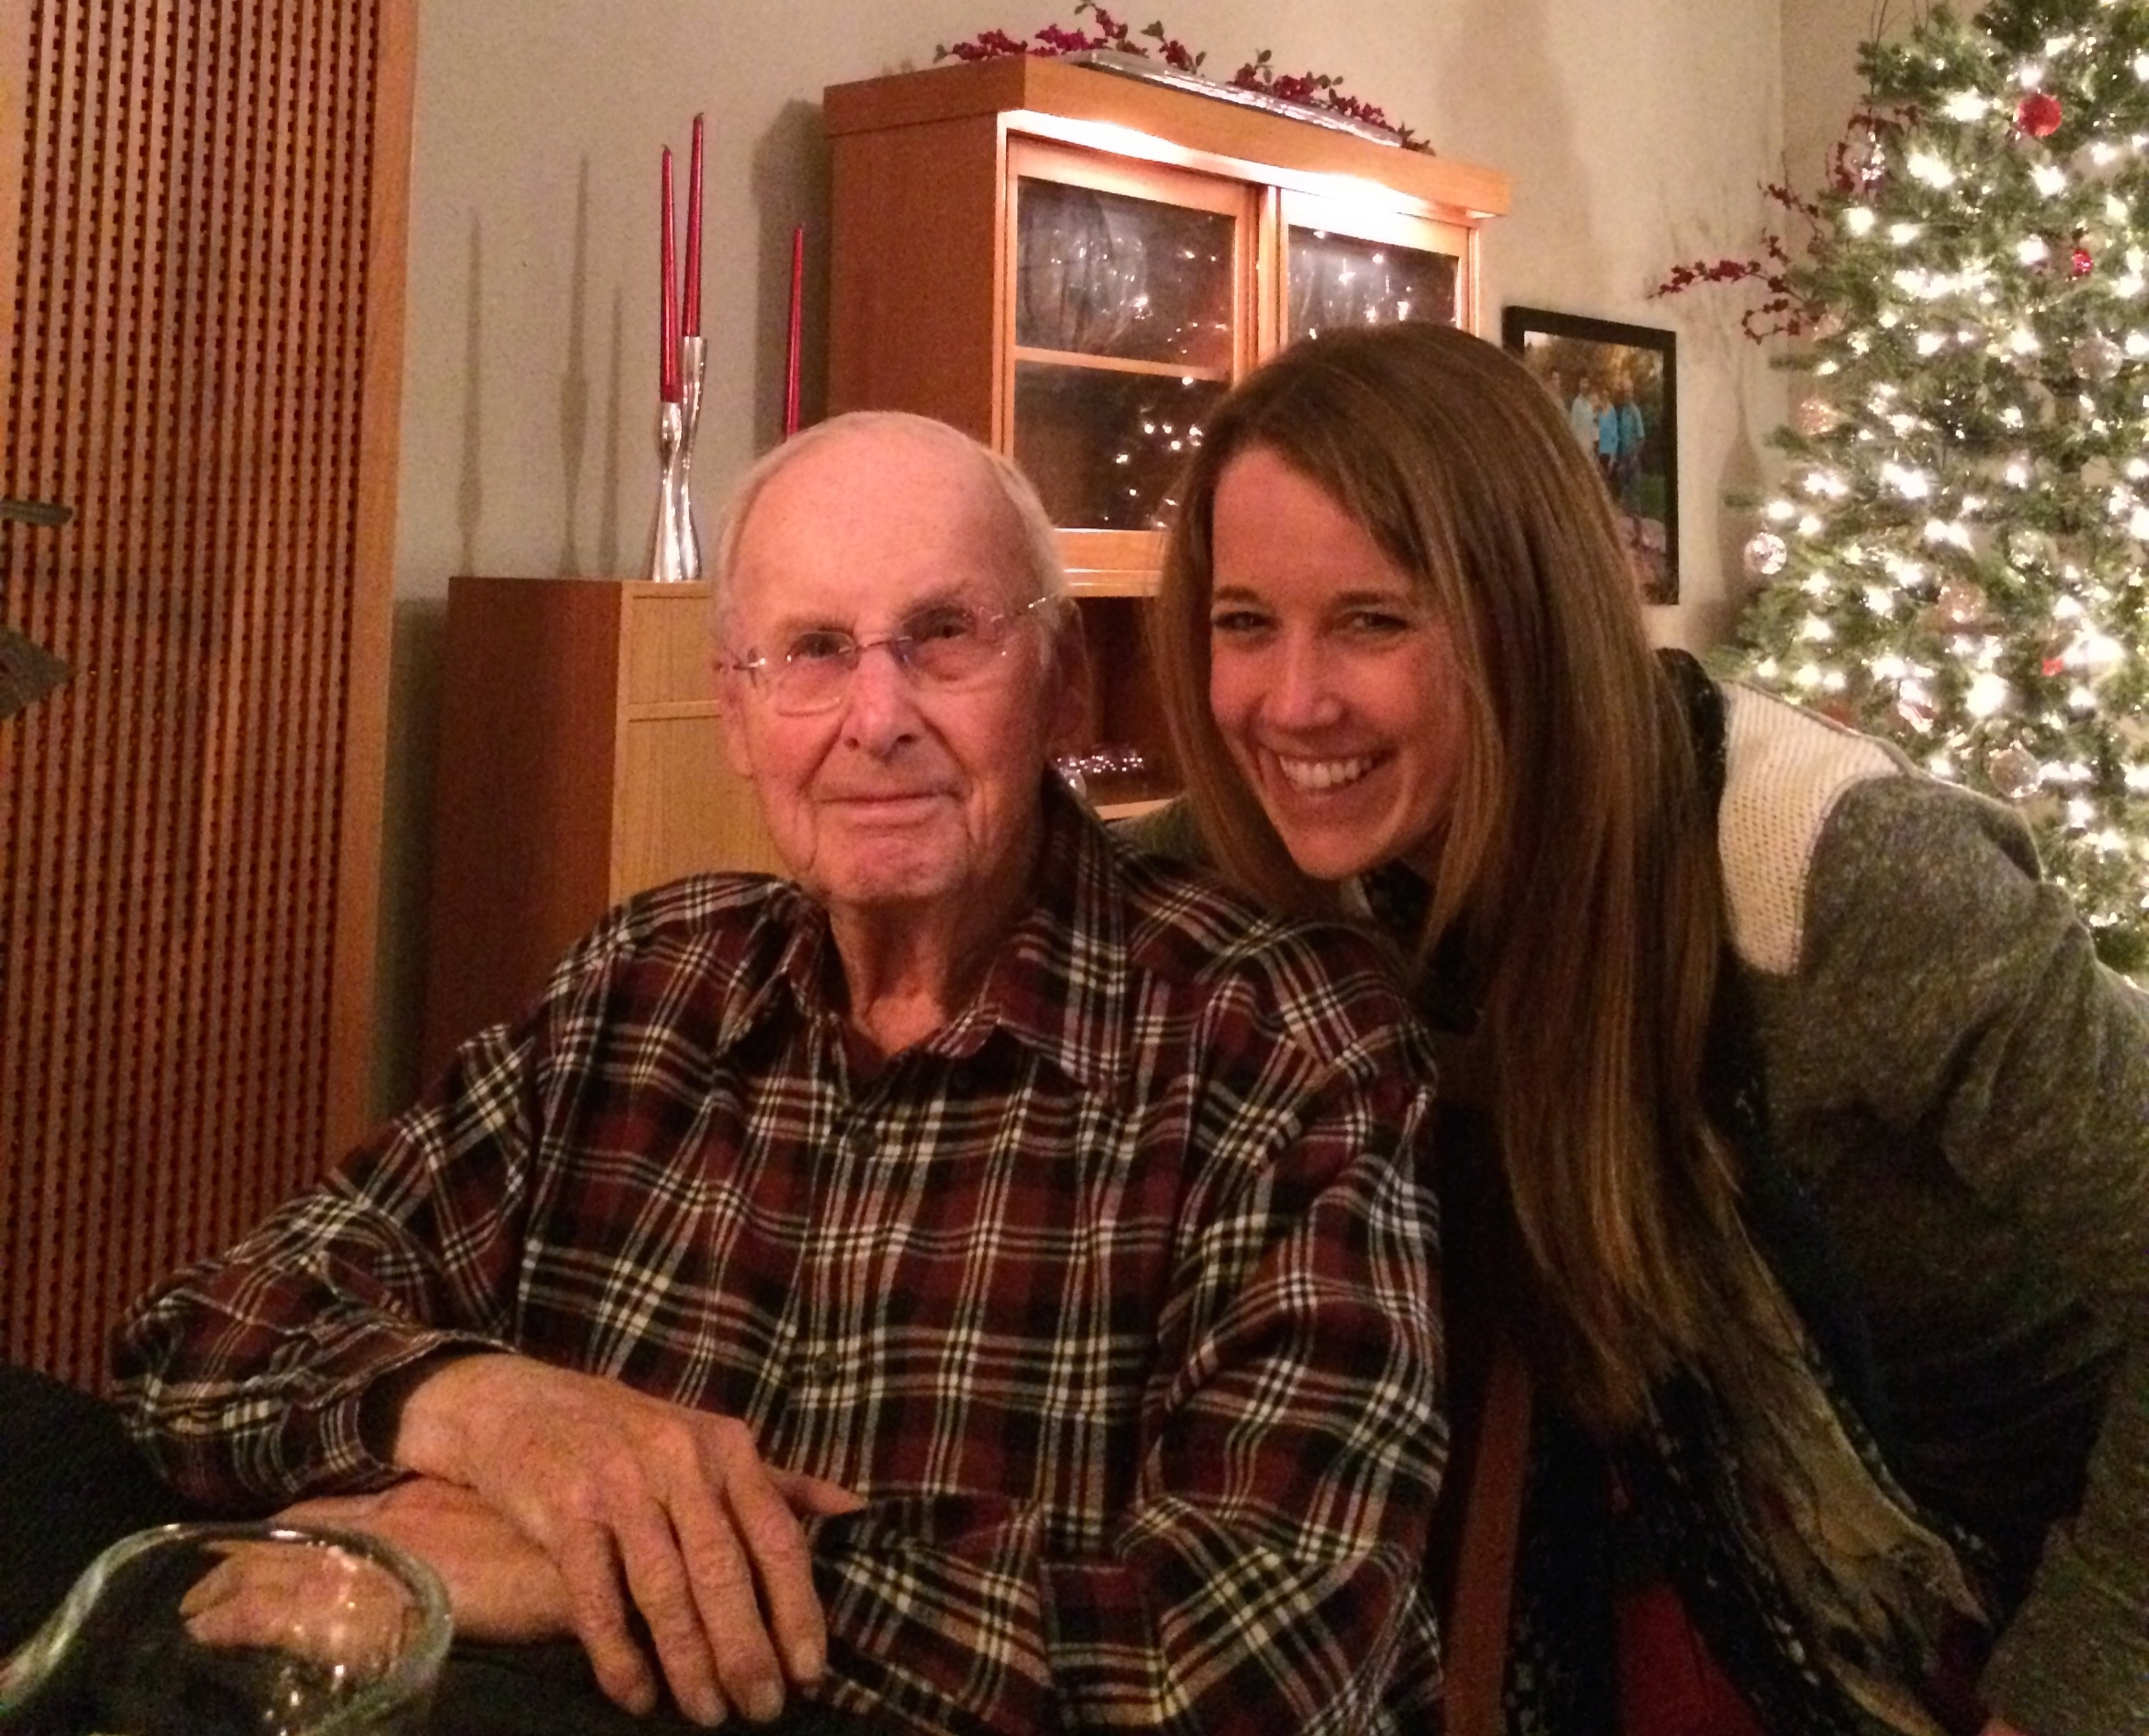 Christmas 2014 in Arizona, when I first asked my Grandpa to be featured in my blog. He's only gotten stronger since then! Oh and he reads the WSJ every day too, brains.